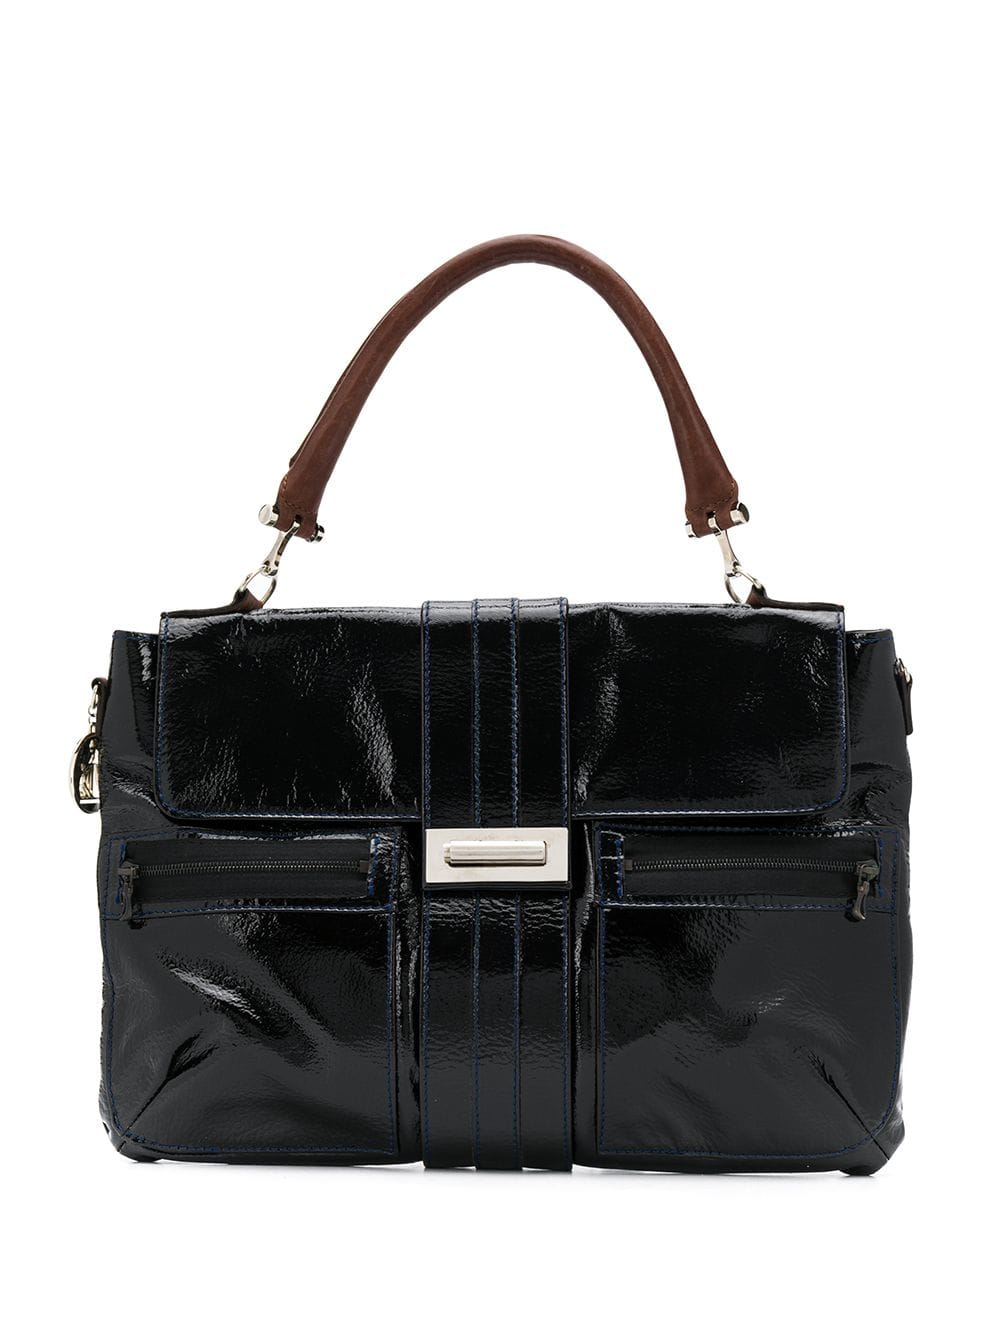 5a52d6c0cb3 LANVIN PRE-OWNED 2000's shoulder bag - Black in 2019 | Products ...